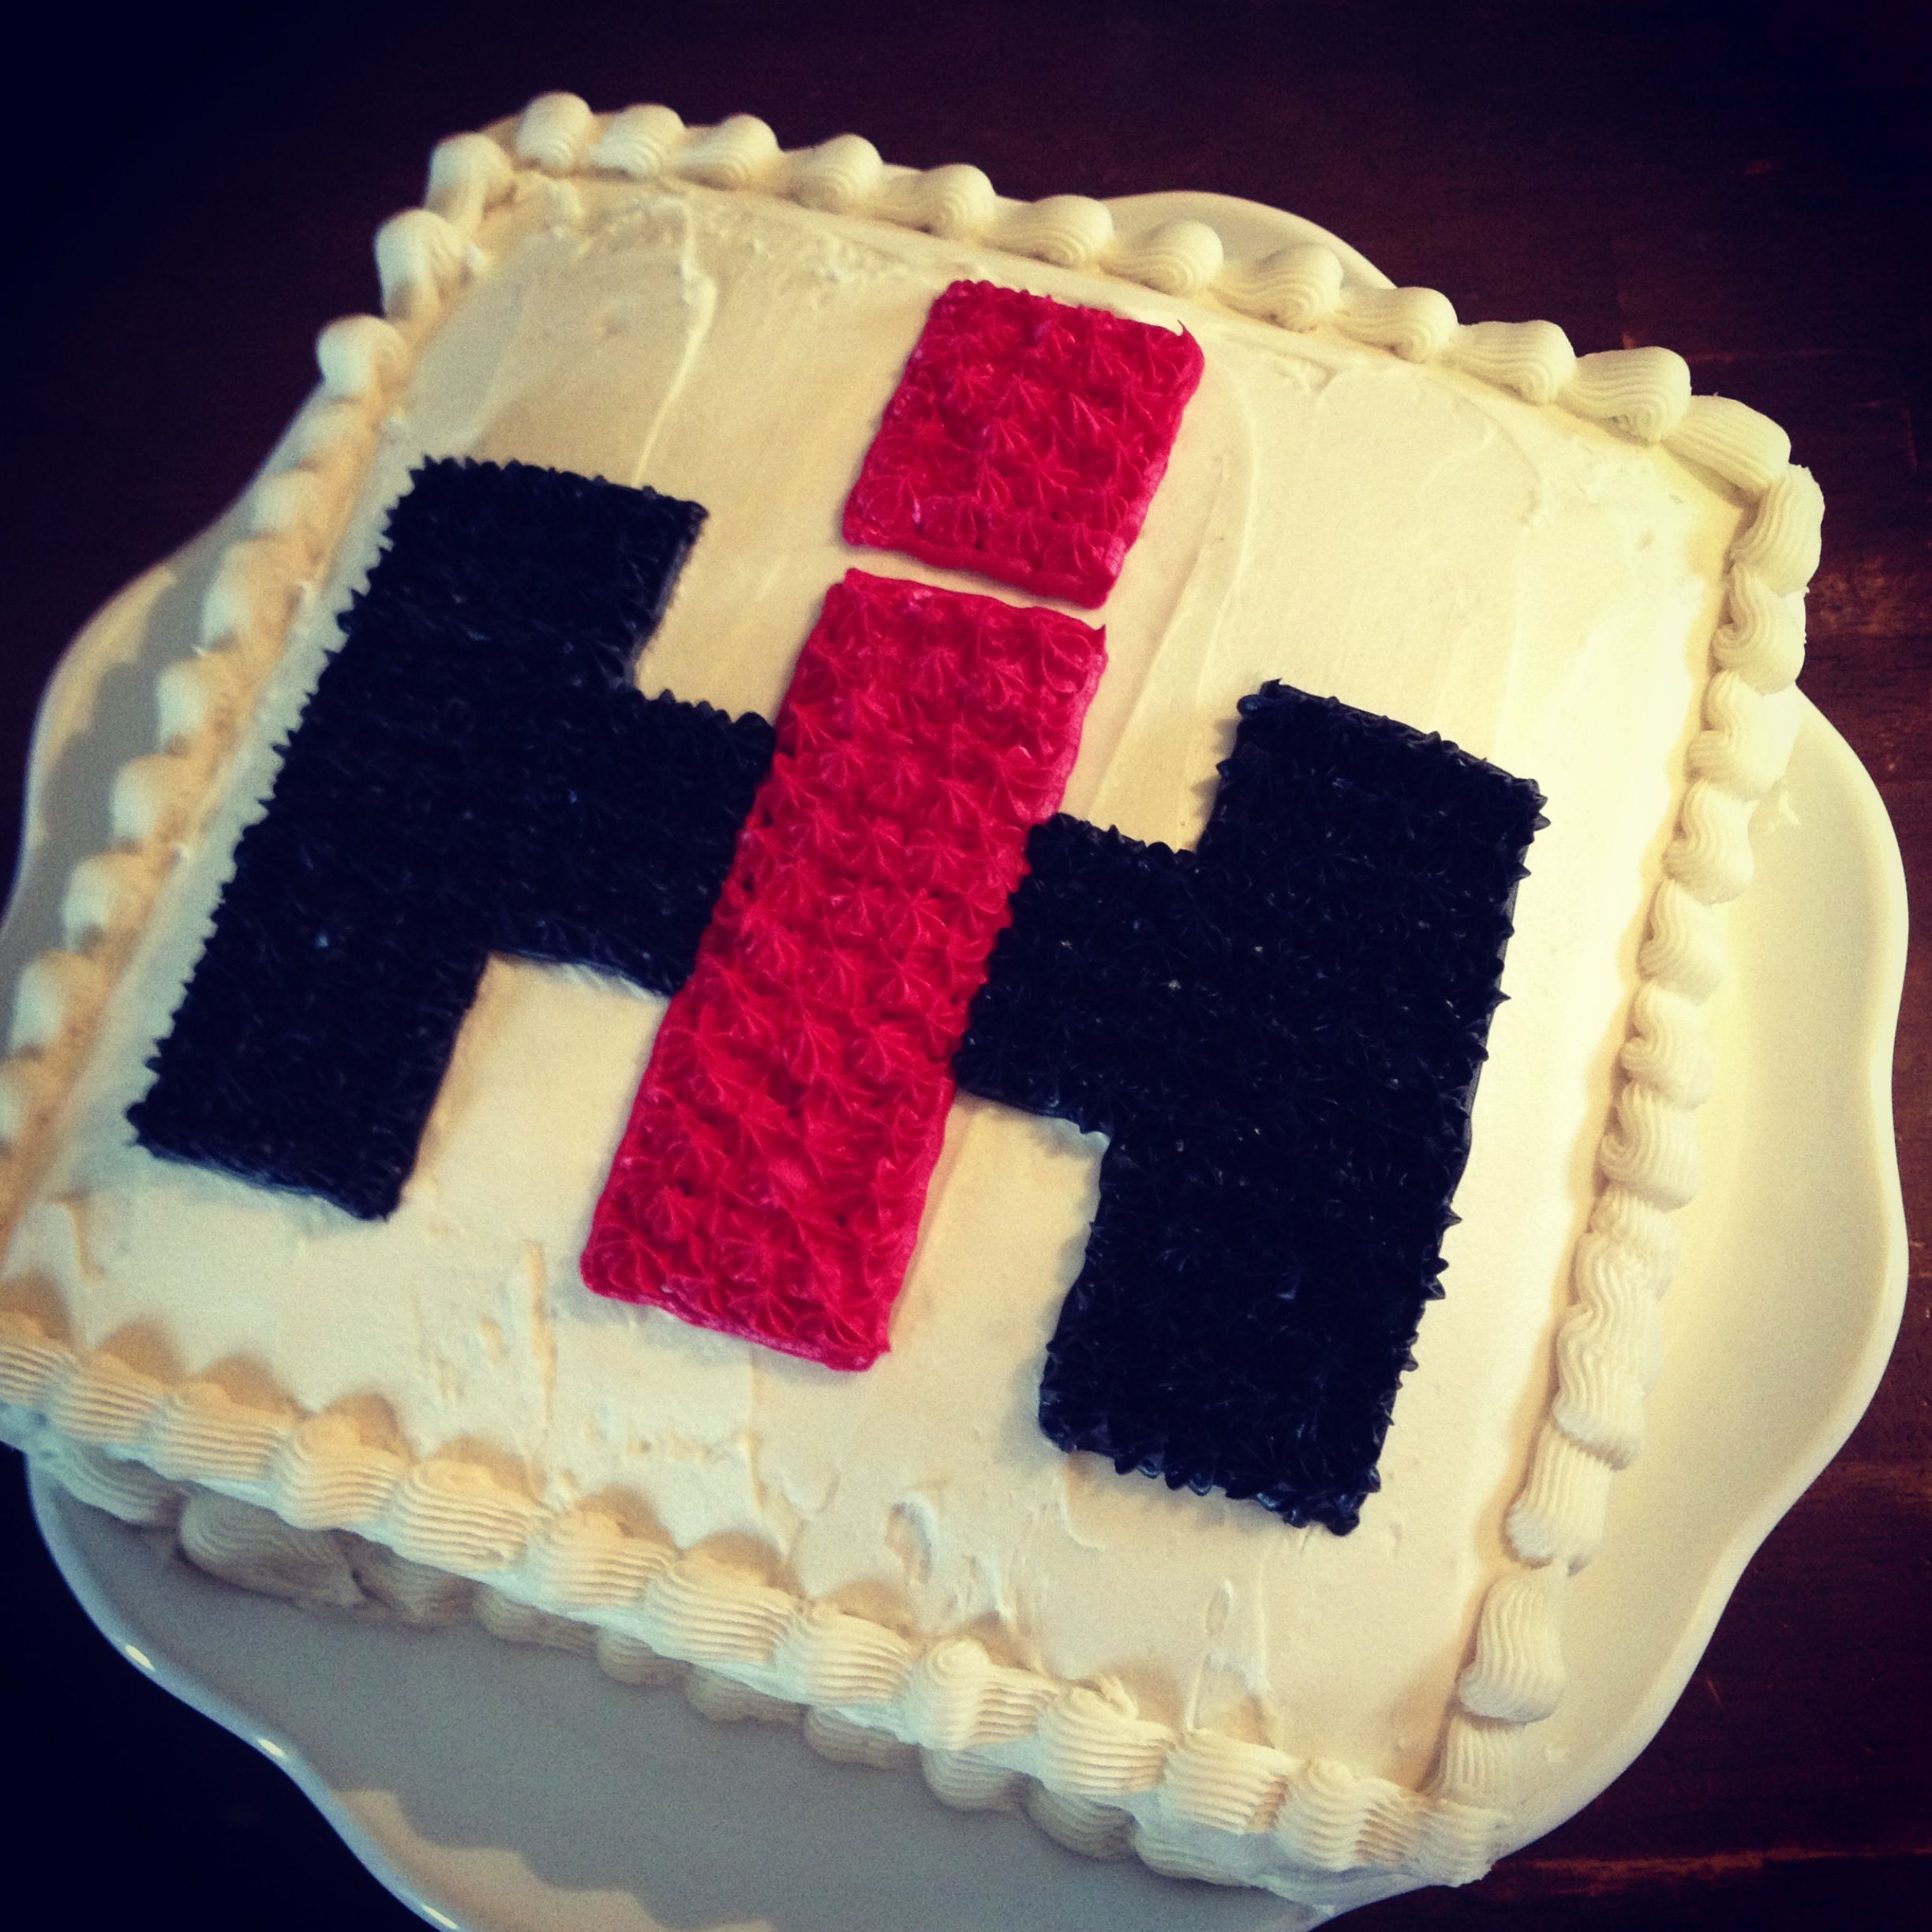 International harvester cake for my country man Made by me